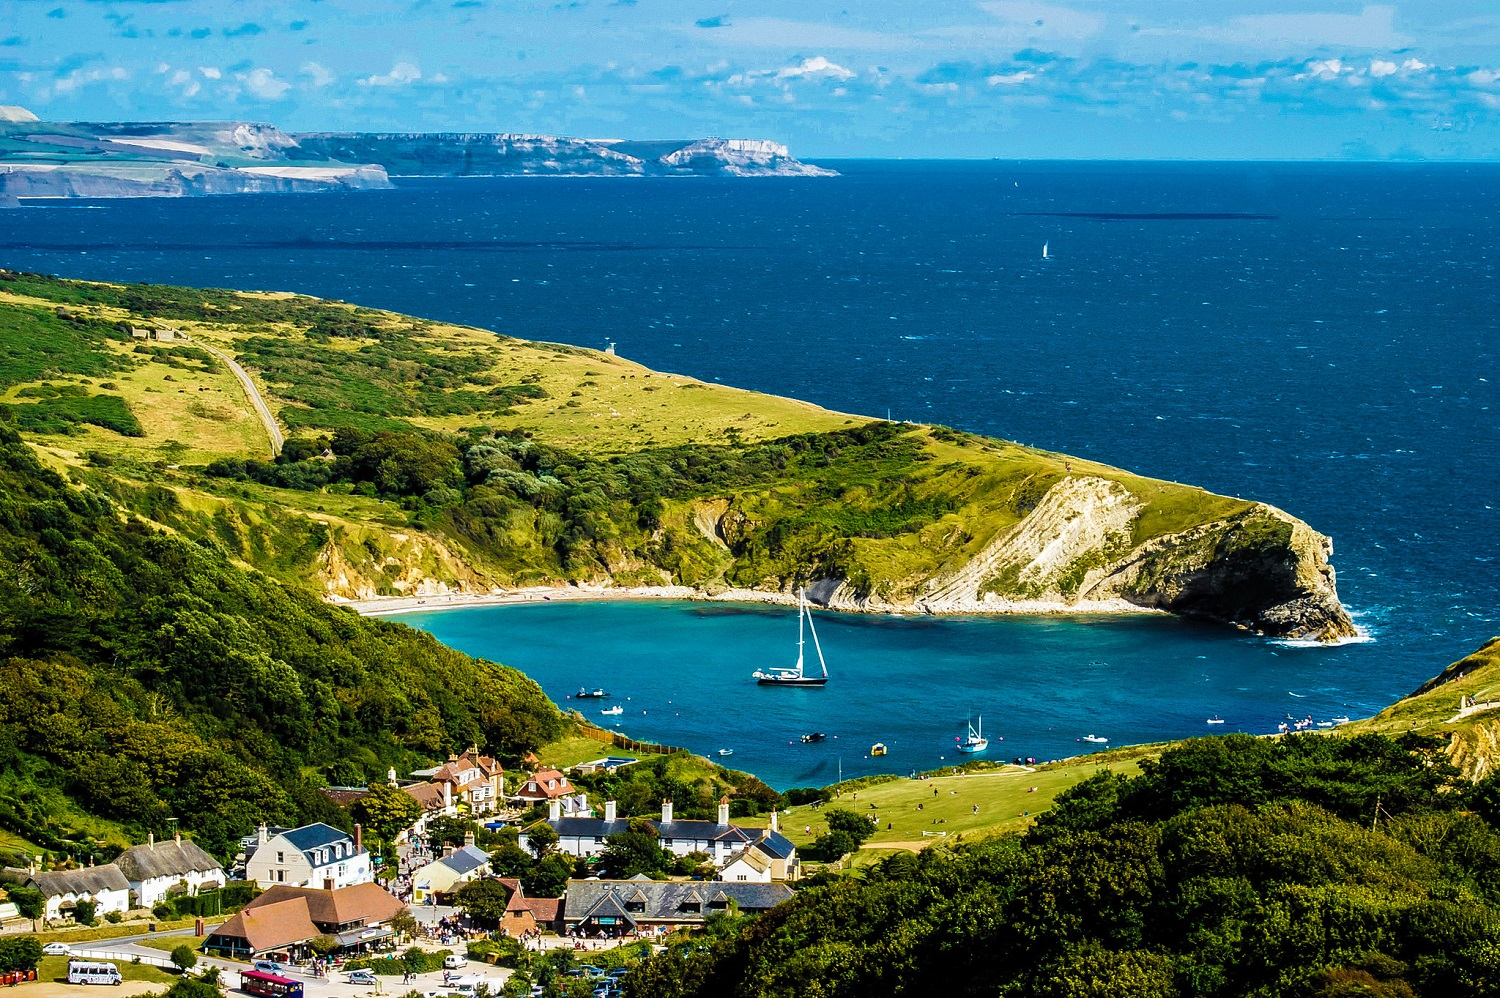 Lulworth Cove from above - Phil Dolby